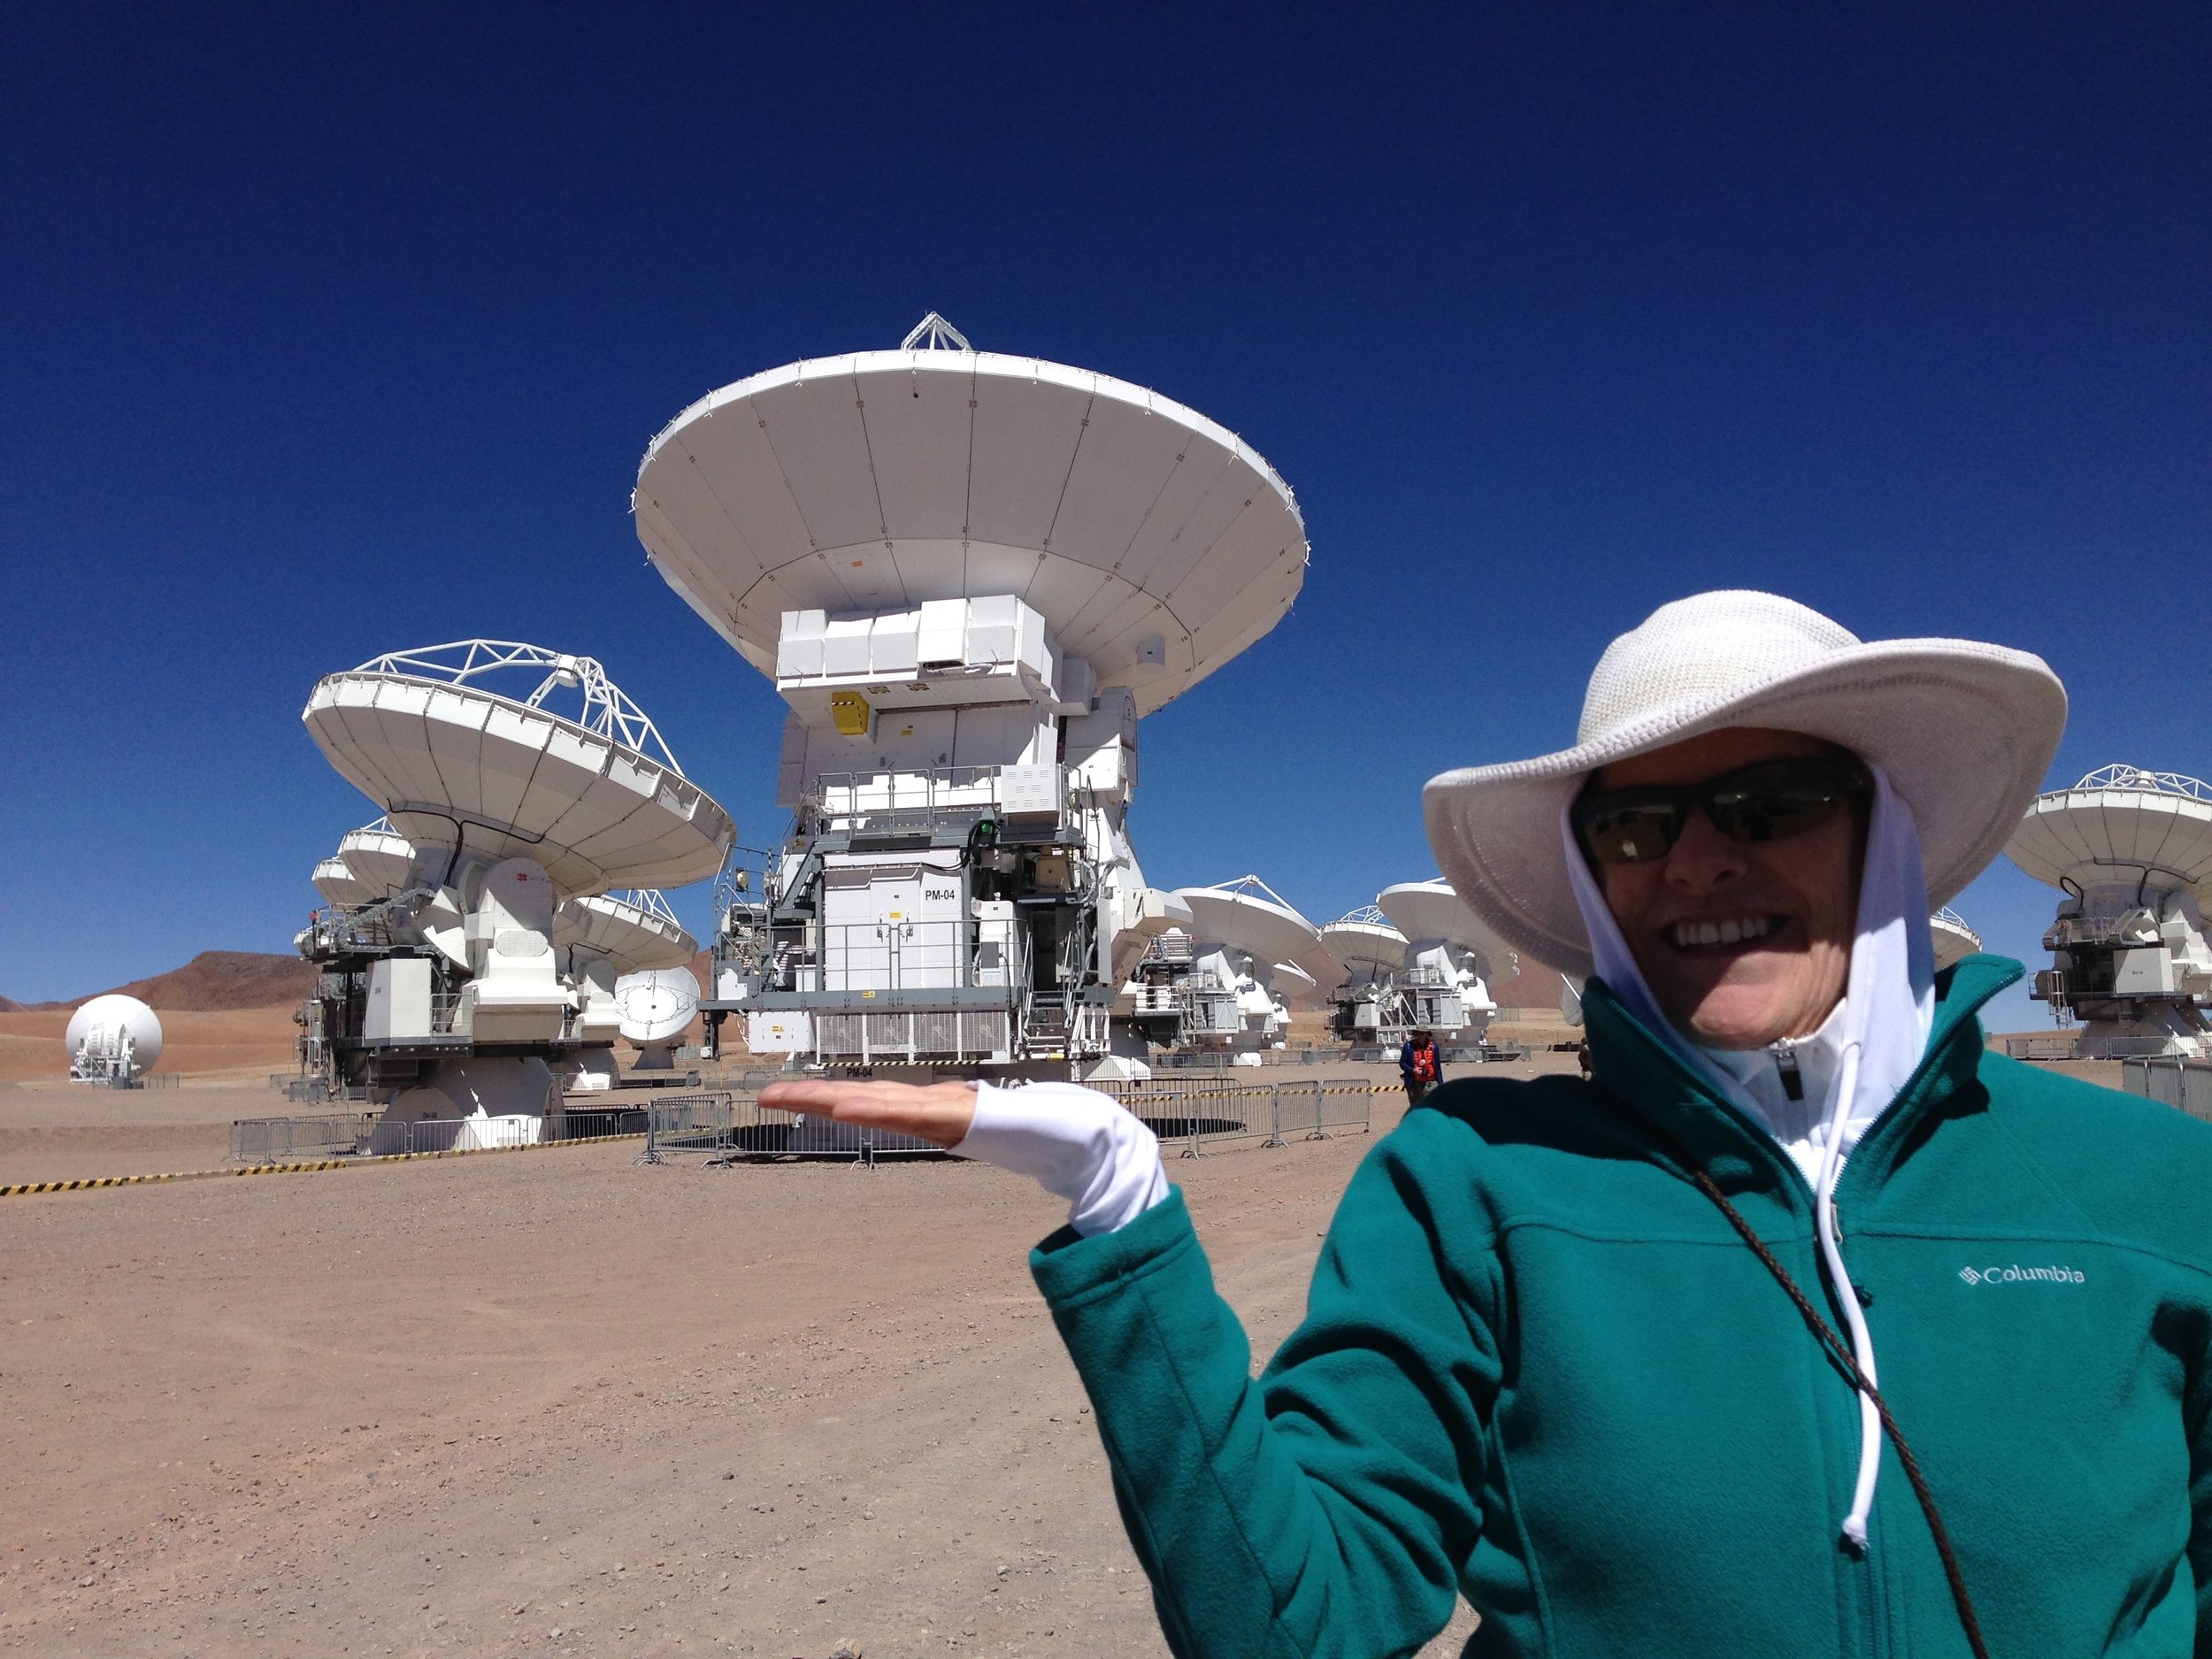 Allison visits the stars at ALMA Observatory in Chile at 16,570 ft altitude.